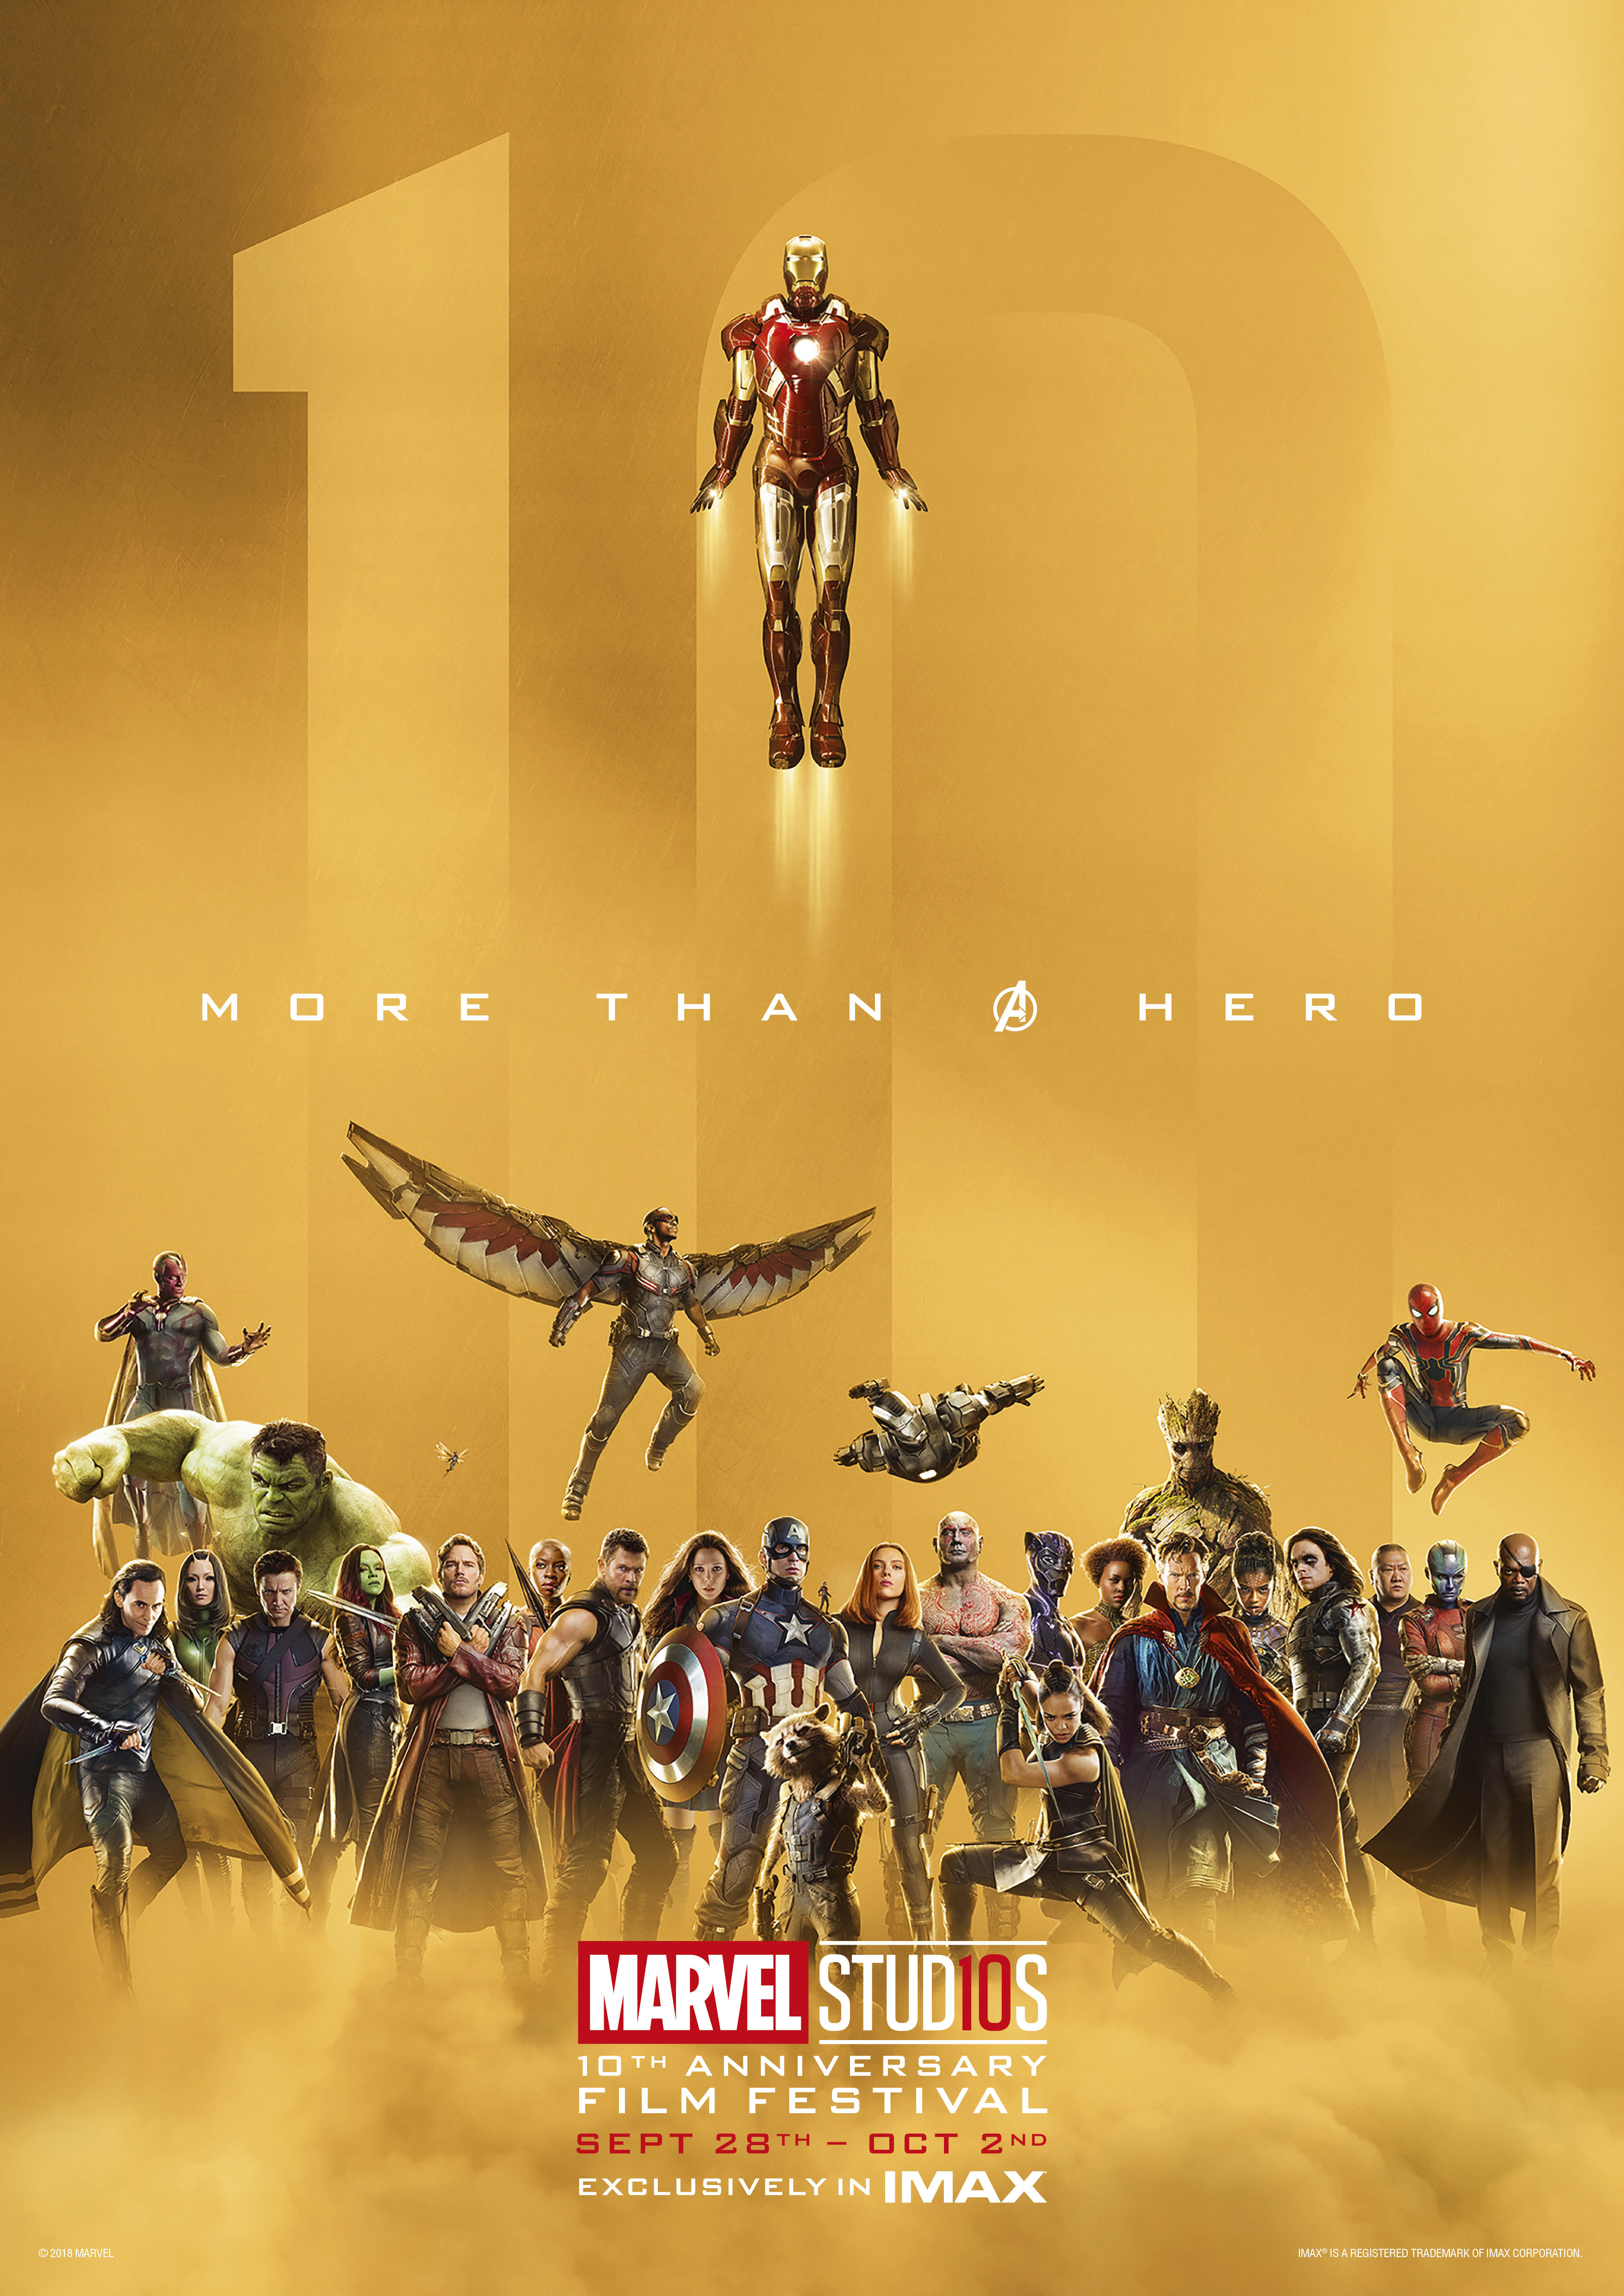 marvel-studios-10th-anniversary-film-festival-in-imax-poster